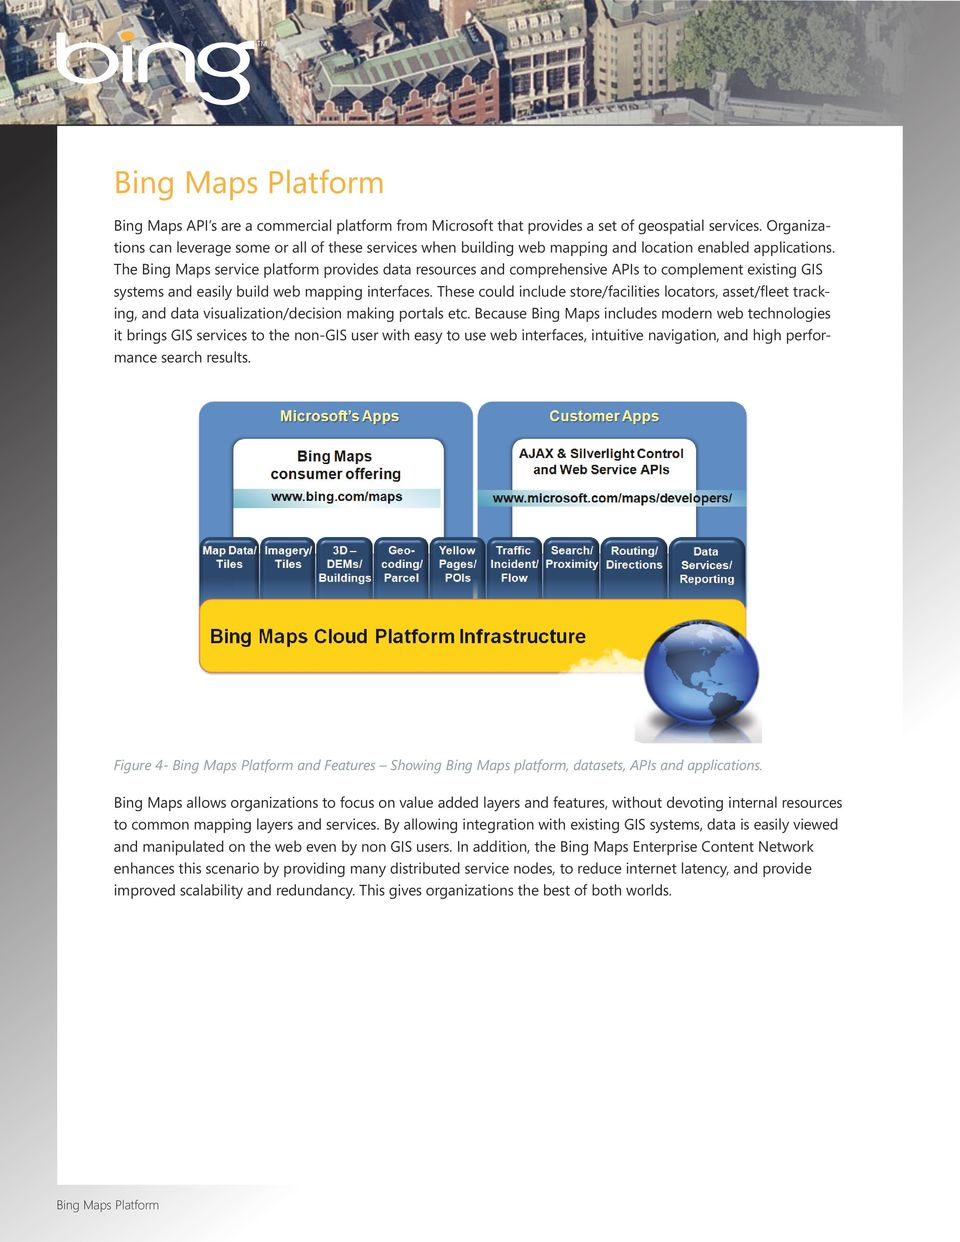 The Bing Maps service platform provides data resources and comprehensive APIs to complement existing GIS systems and easily build web mapping interfaces.